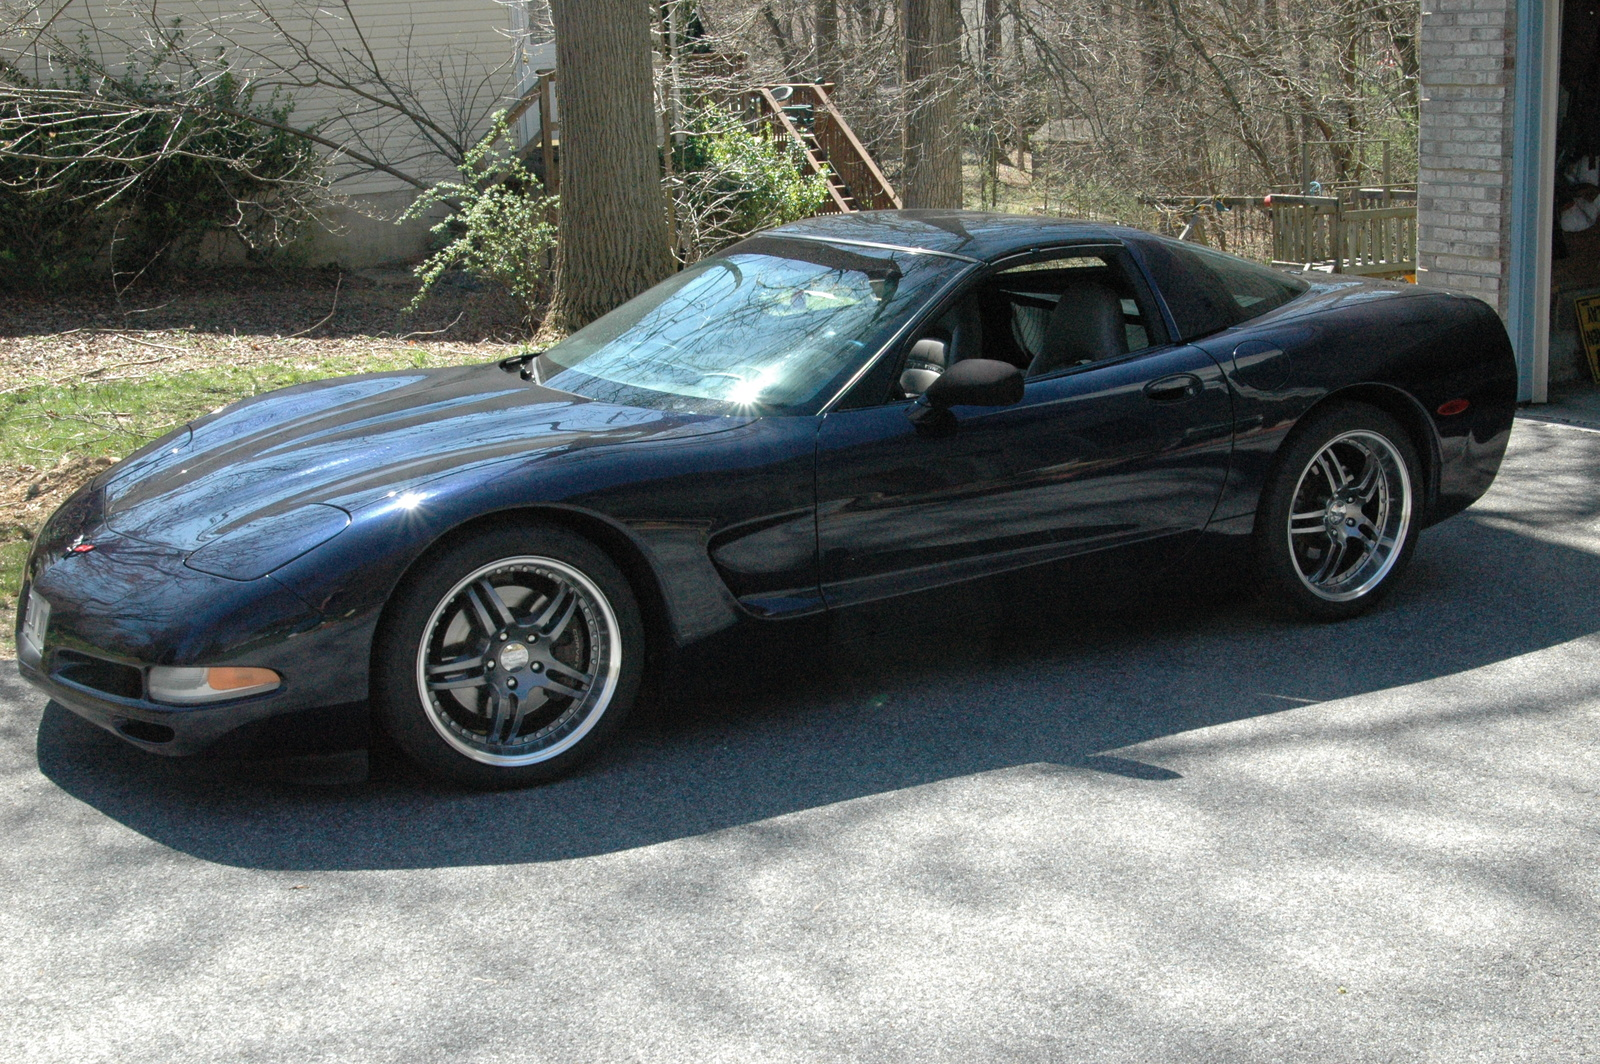 Picture of 2001 Chevrolet Corvette Coupe